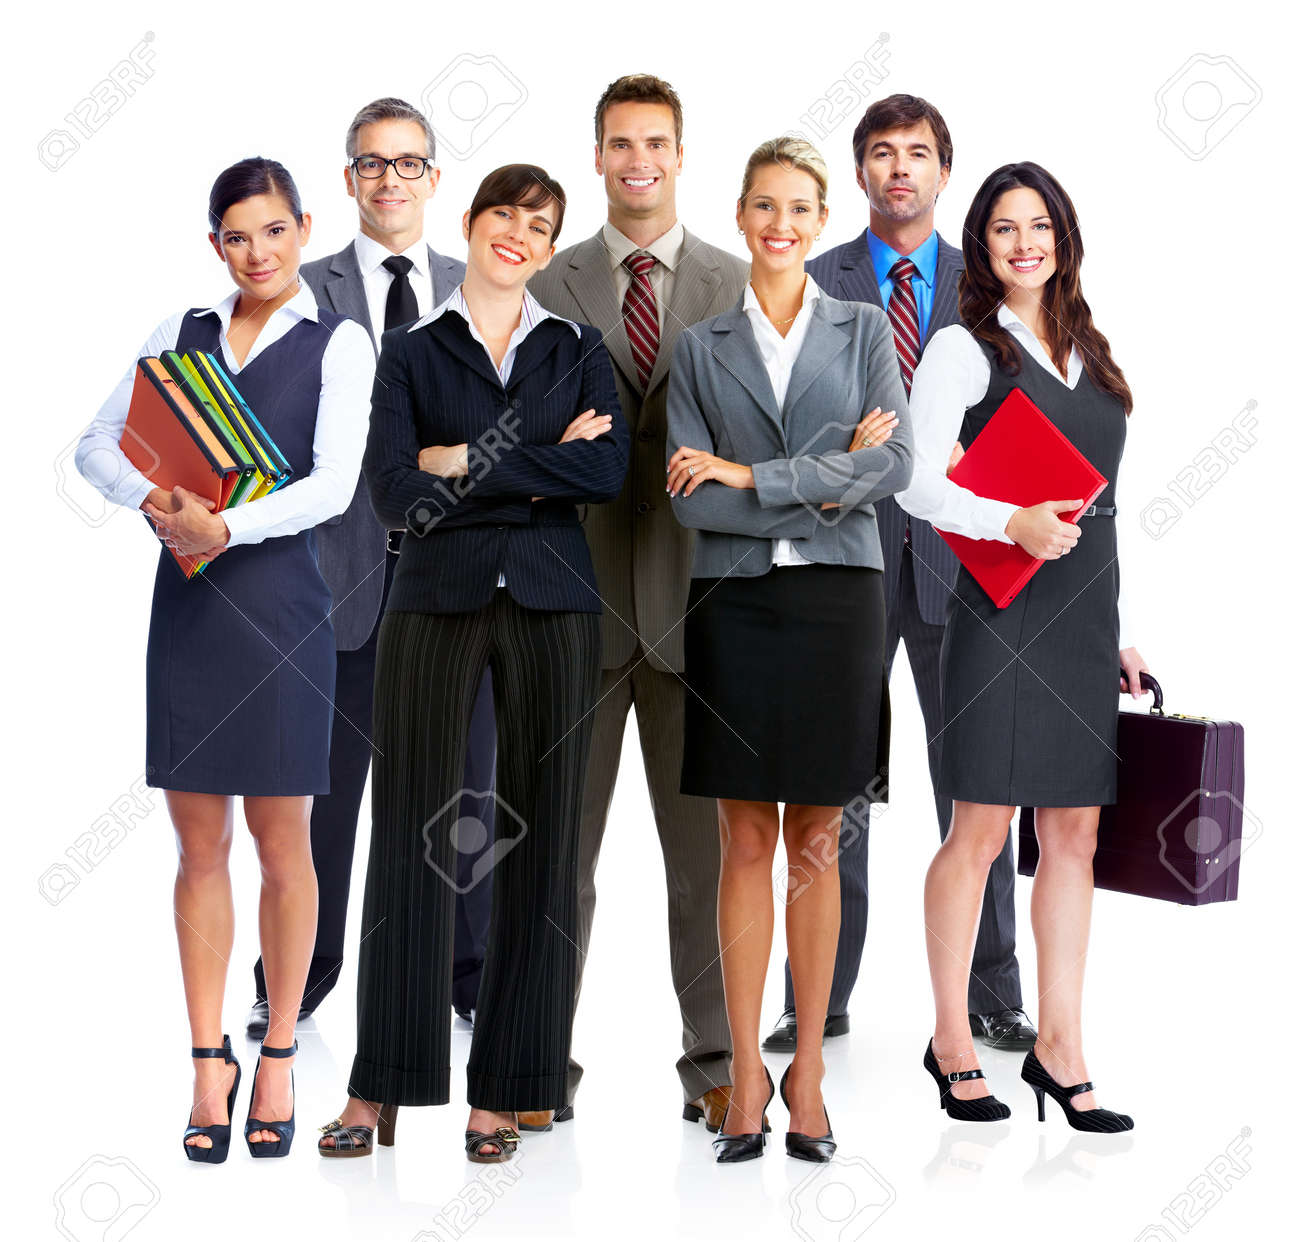 Business people group  Isilated over white backgorund Stock Photo - 23087802